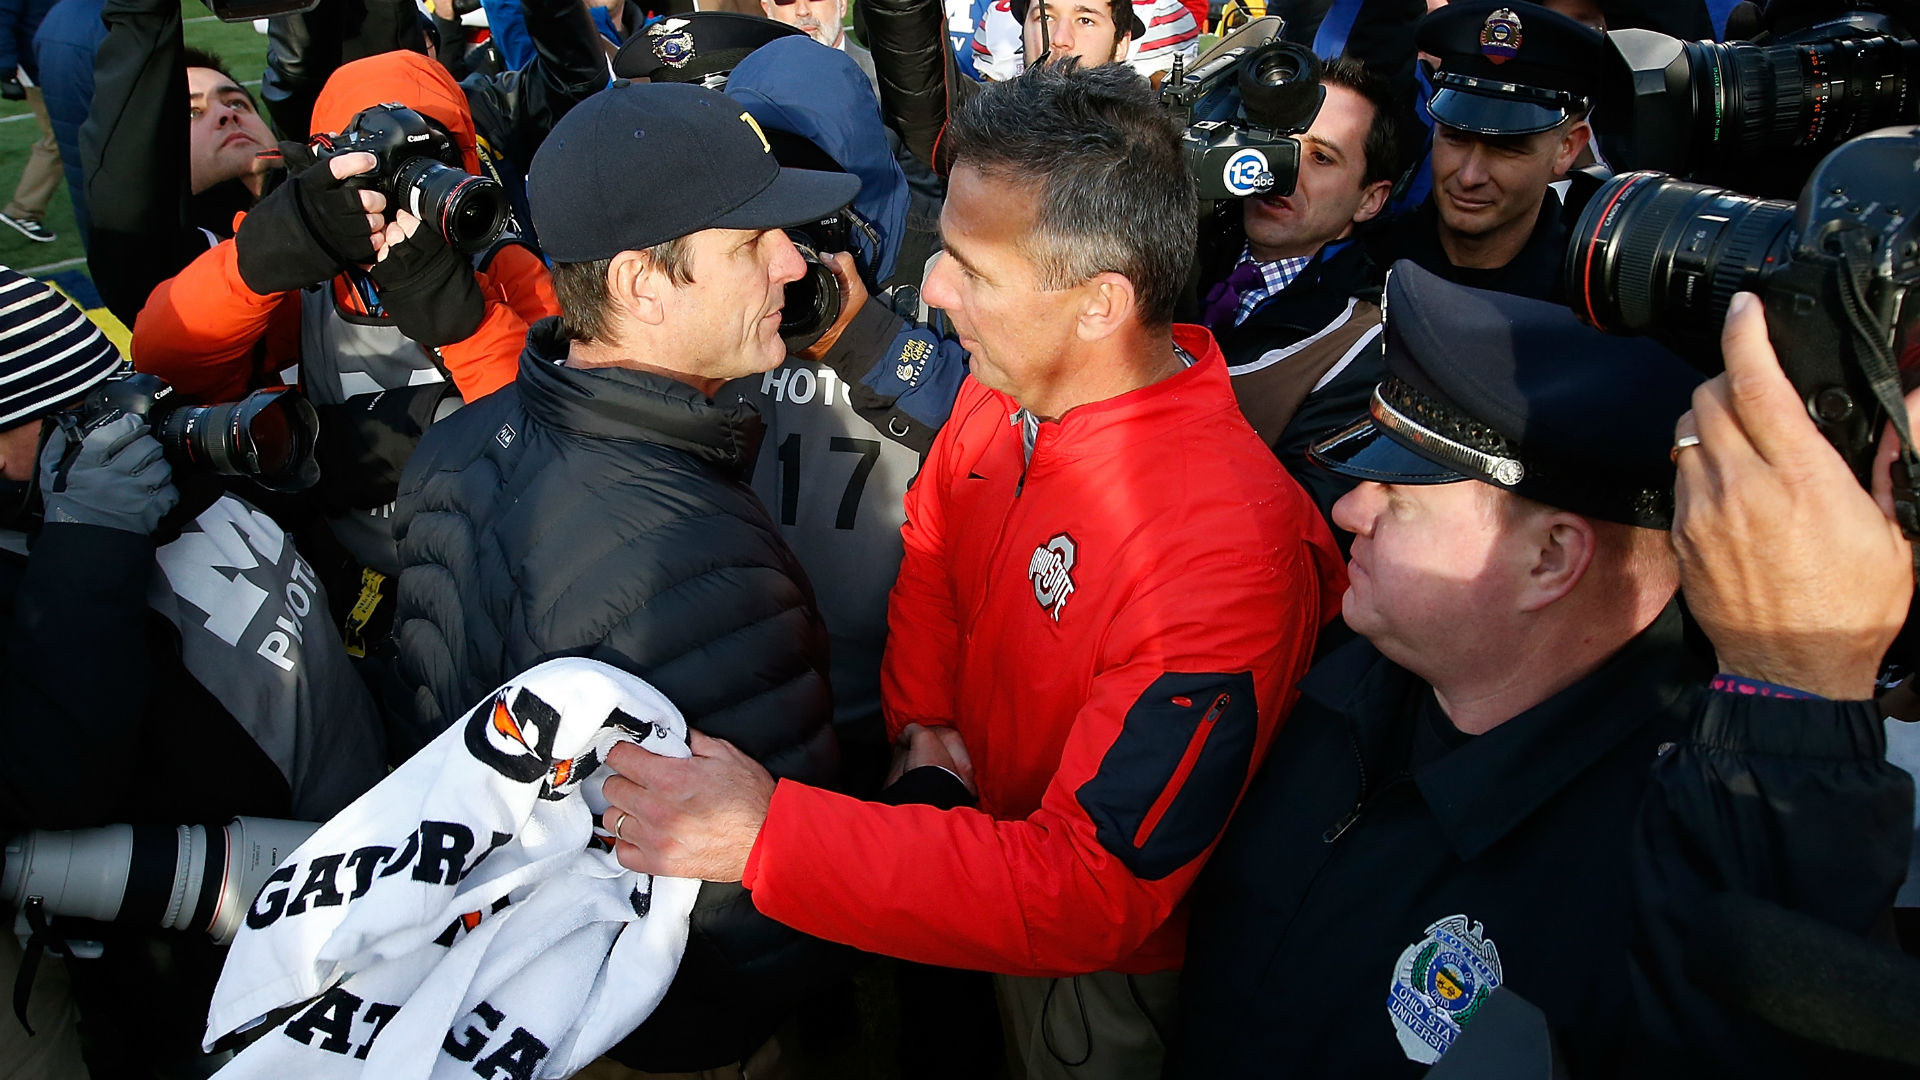 Urban-Harbaugh-112915-getty-ftr